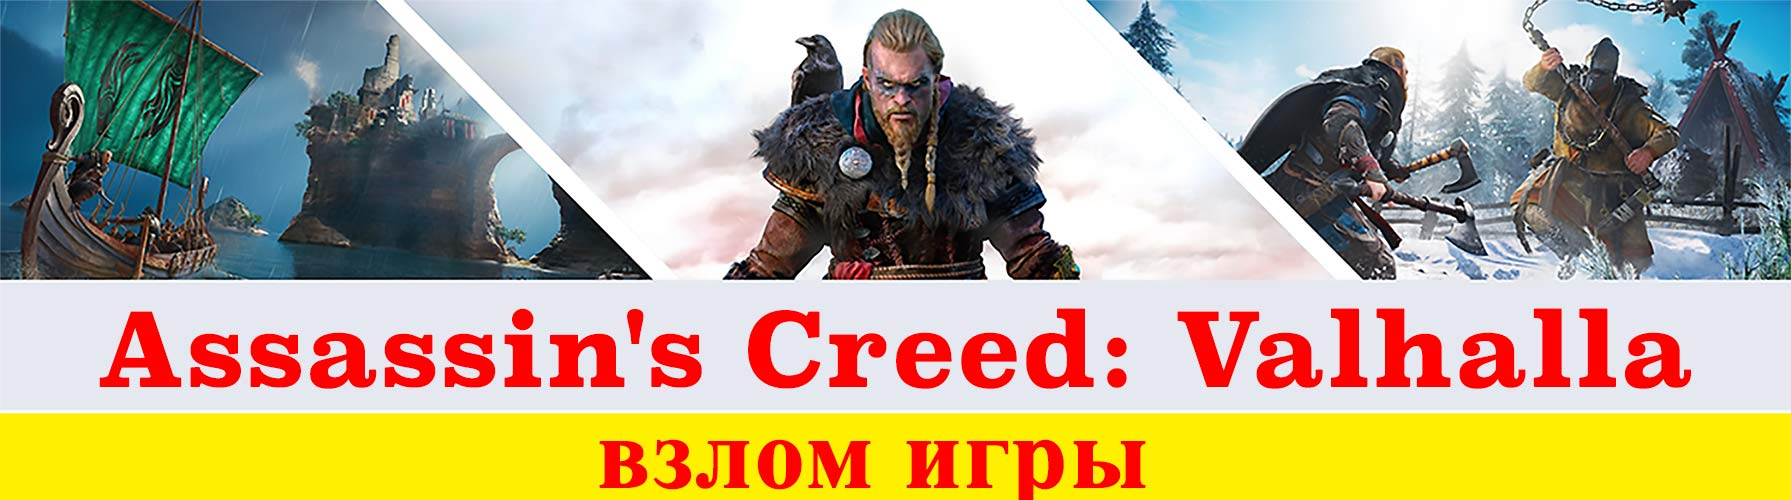 взлом игры Assassin's Creed: Valhalla